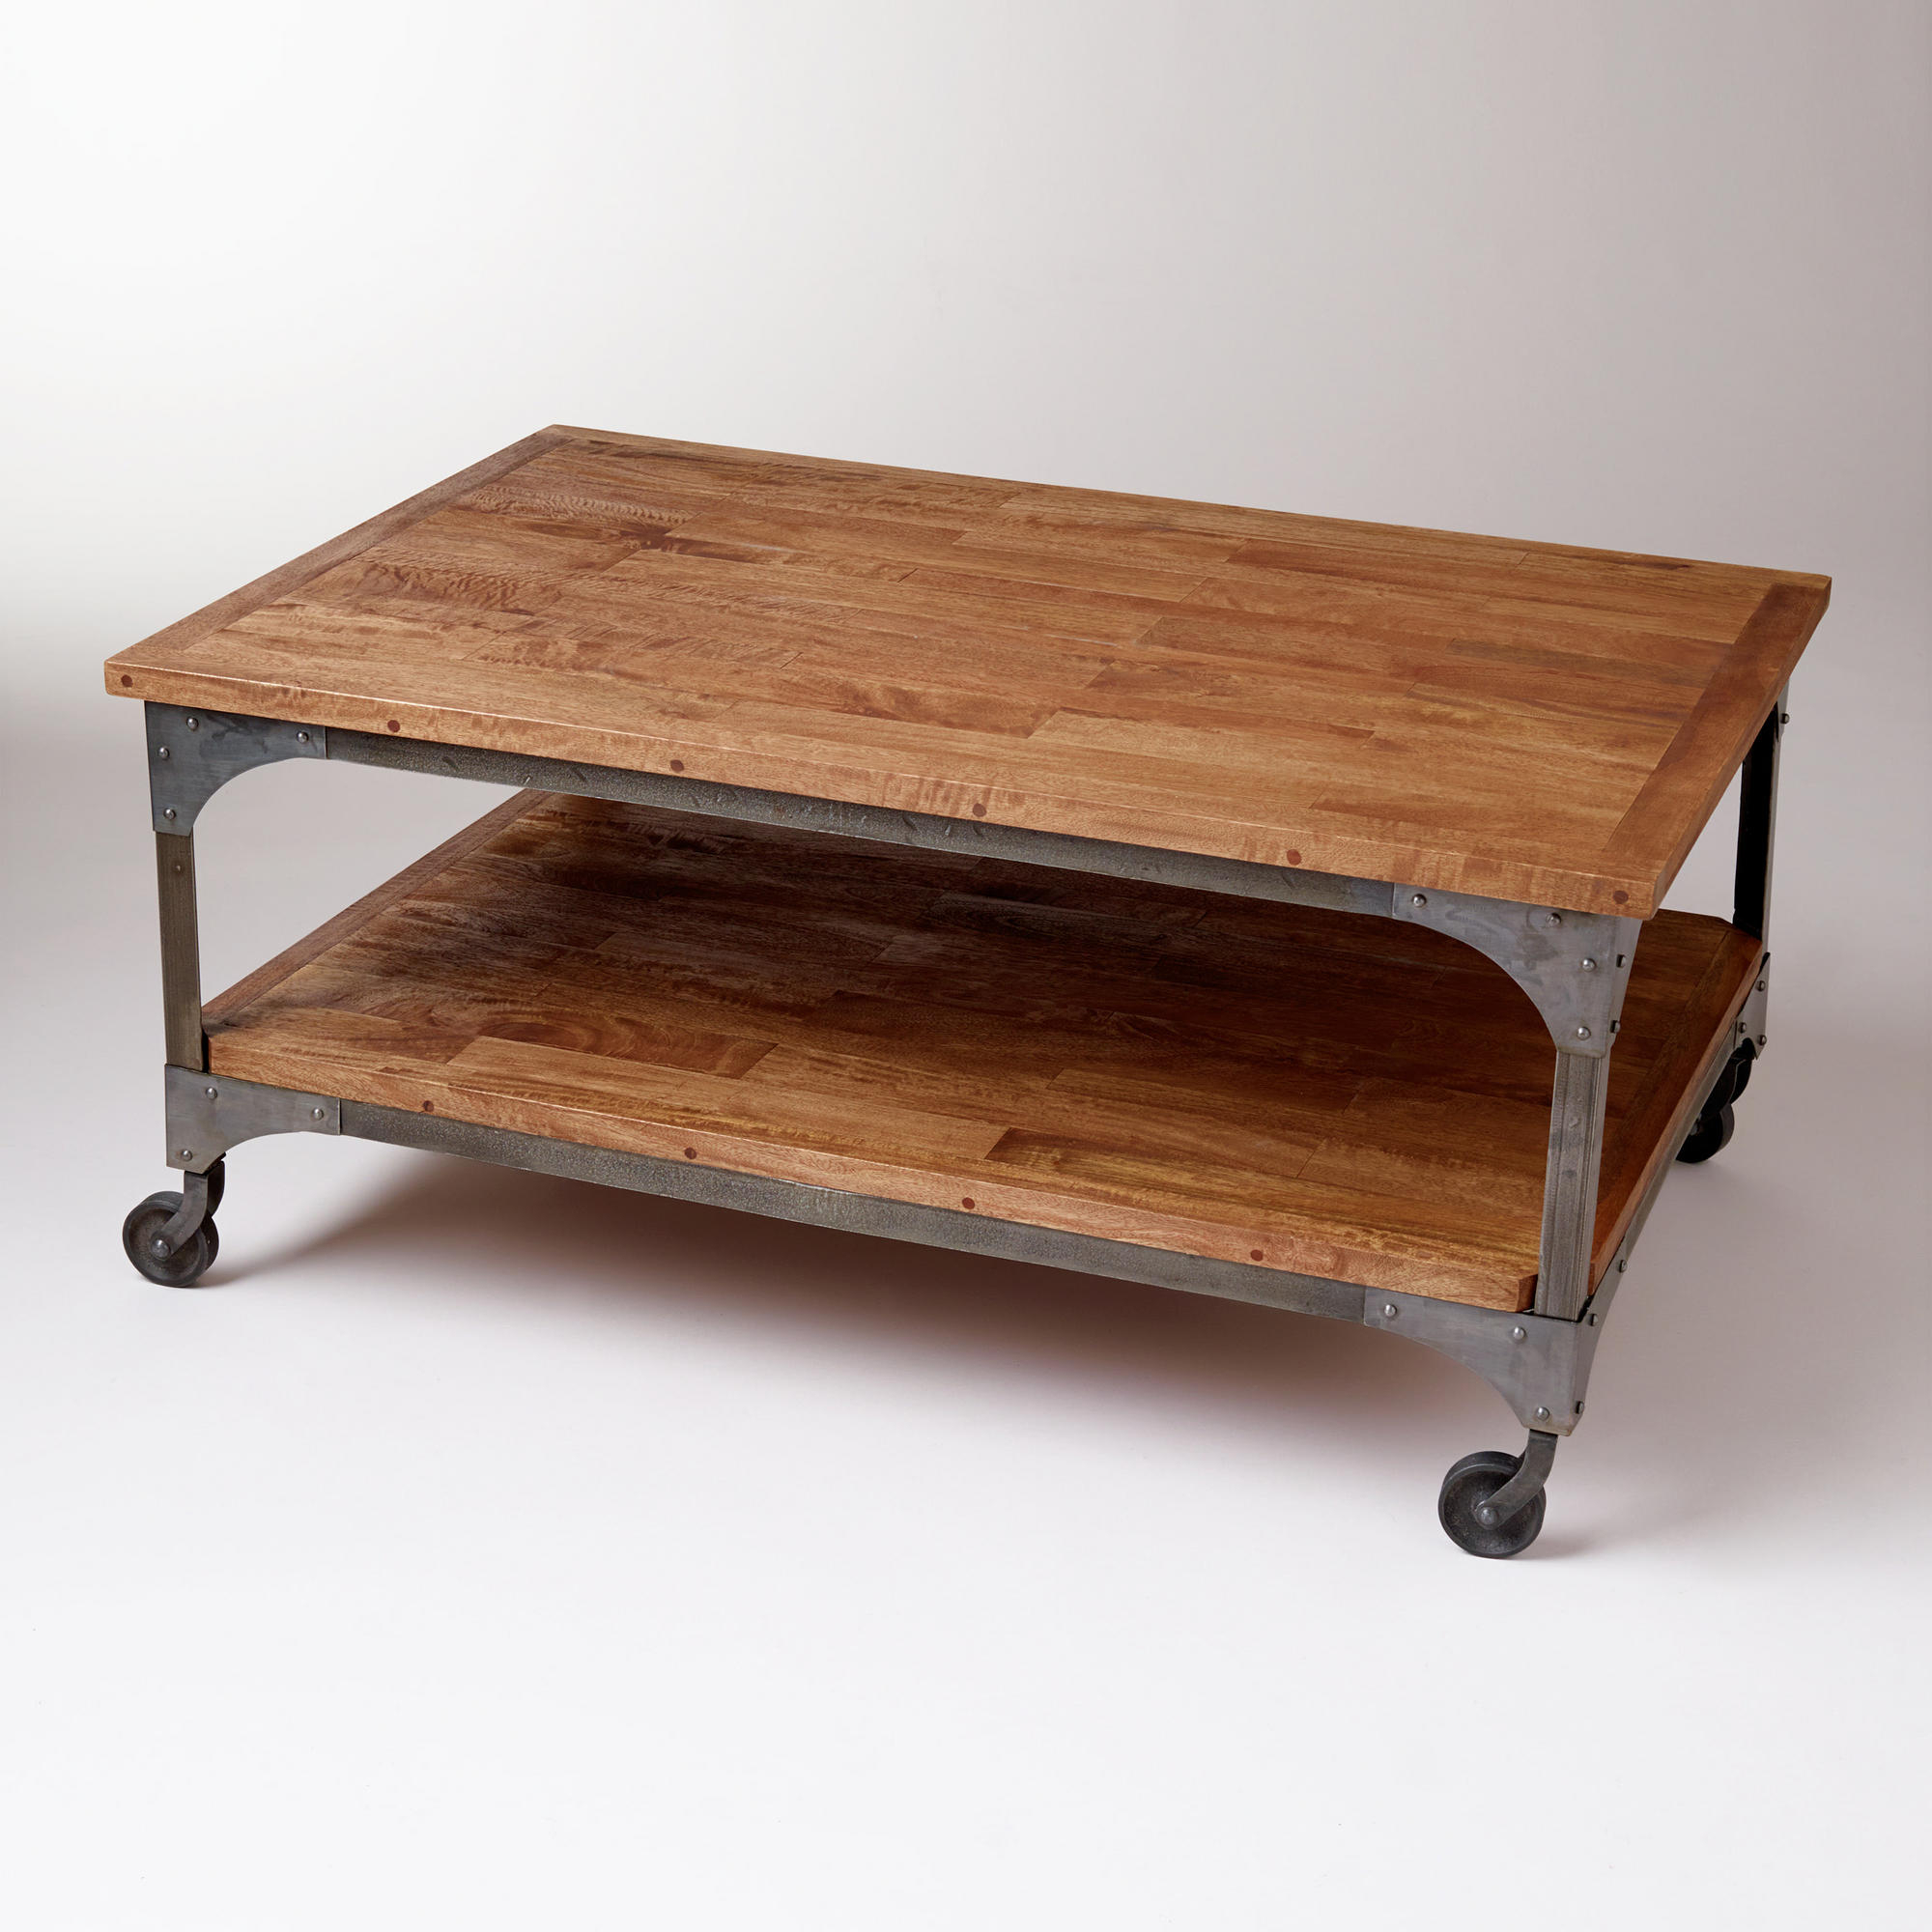 Natural Wheel Coffee Tables For Well Known Coffee Table: Wonderful Cheap Wood Coffee Table Small Coffee Table (Gallery 8 of 20)